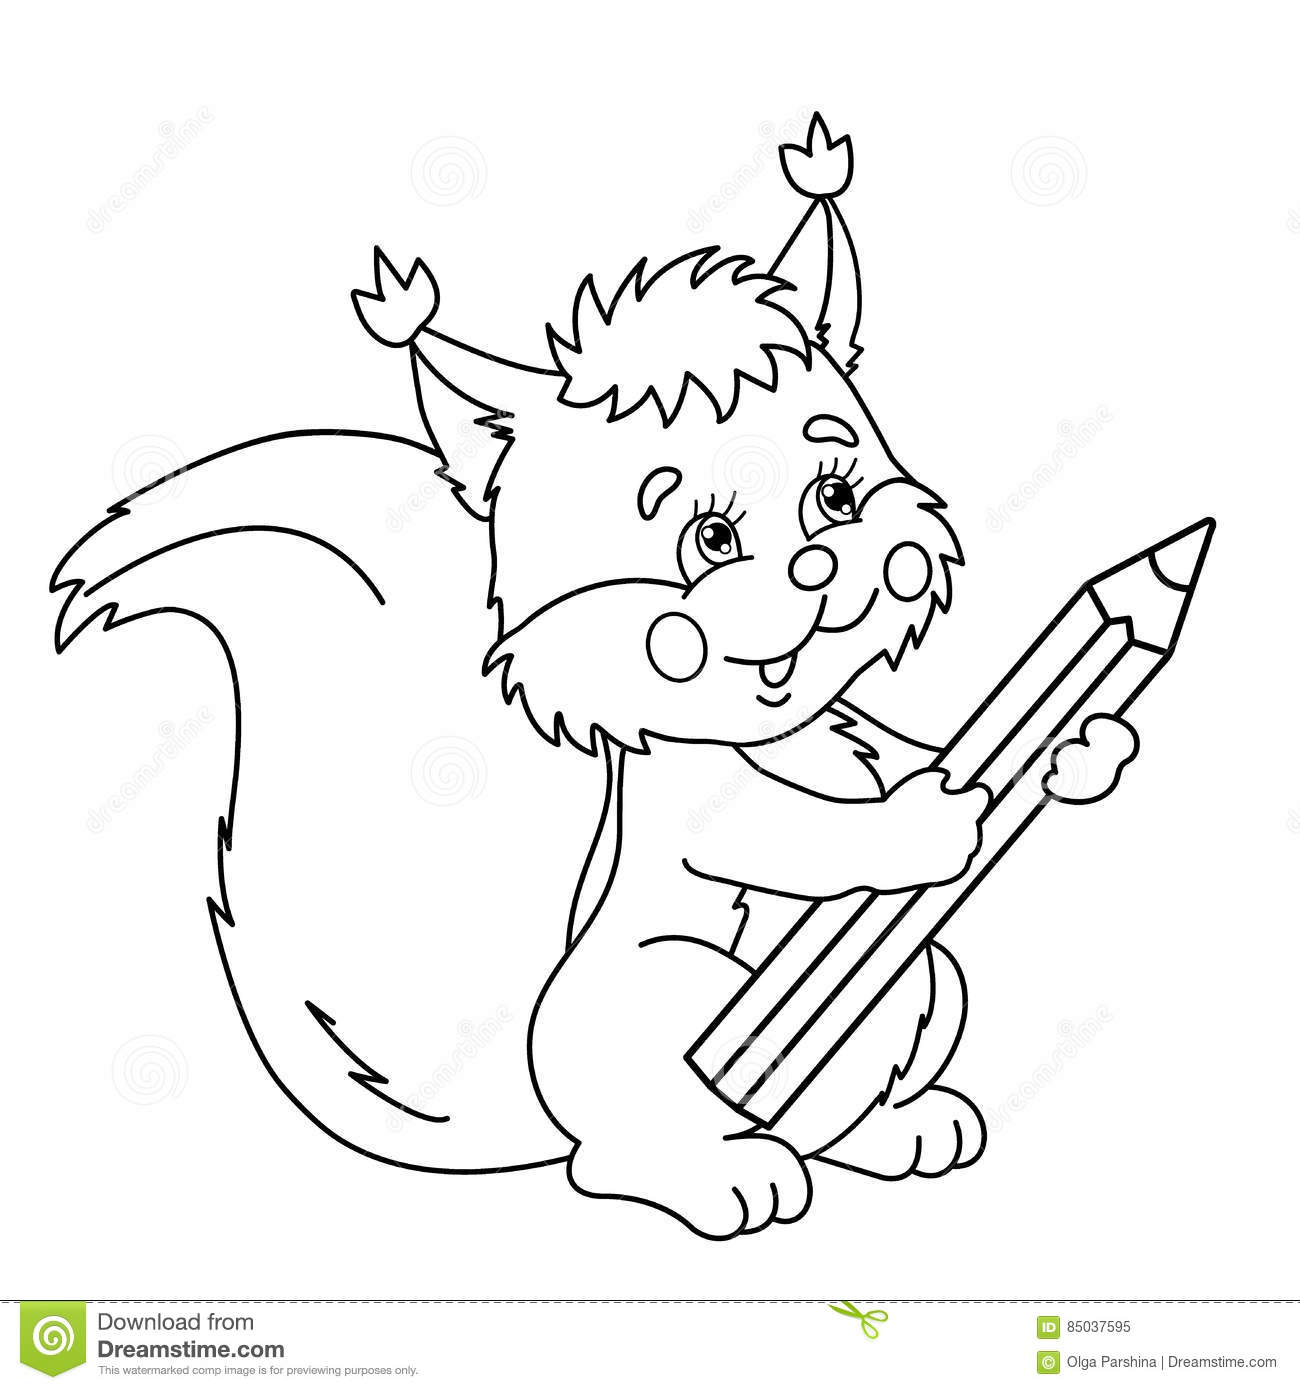 coloring page outline of cartoon squirrel with pencil stock